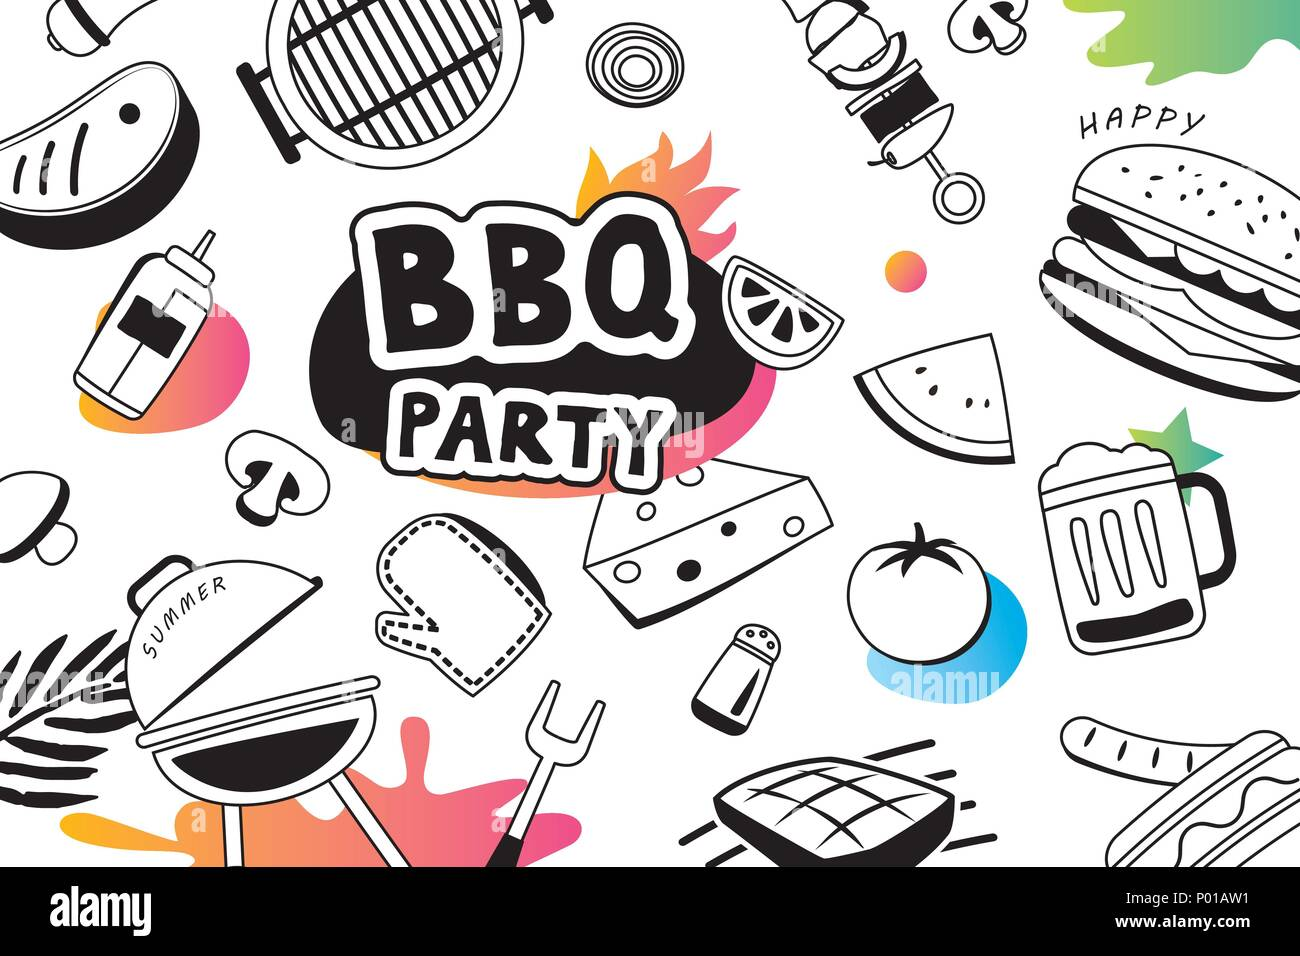 Summer BBQ doodles symbol and objects icon for party background ...